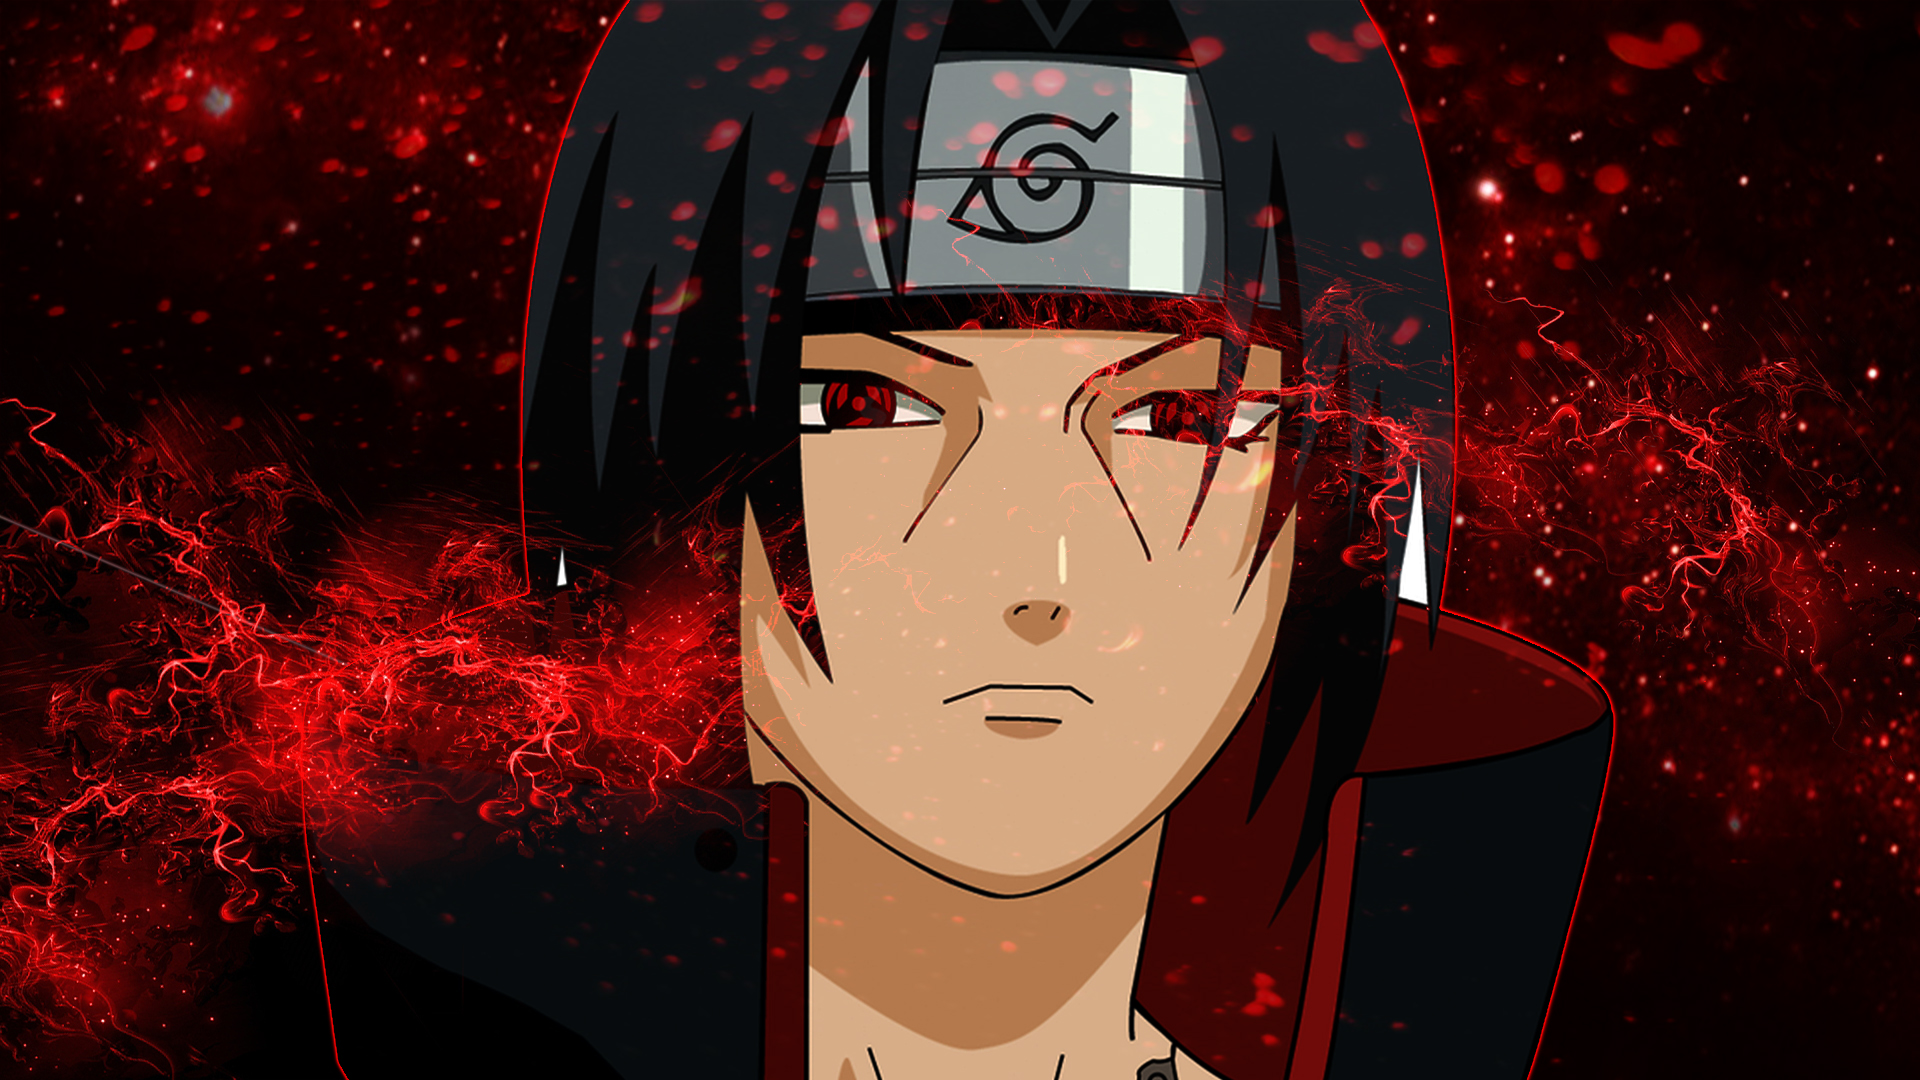 Wallpaper of Itachi Uchiha, Anime, Naruto, Sharingan